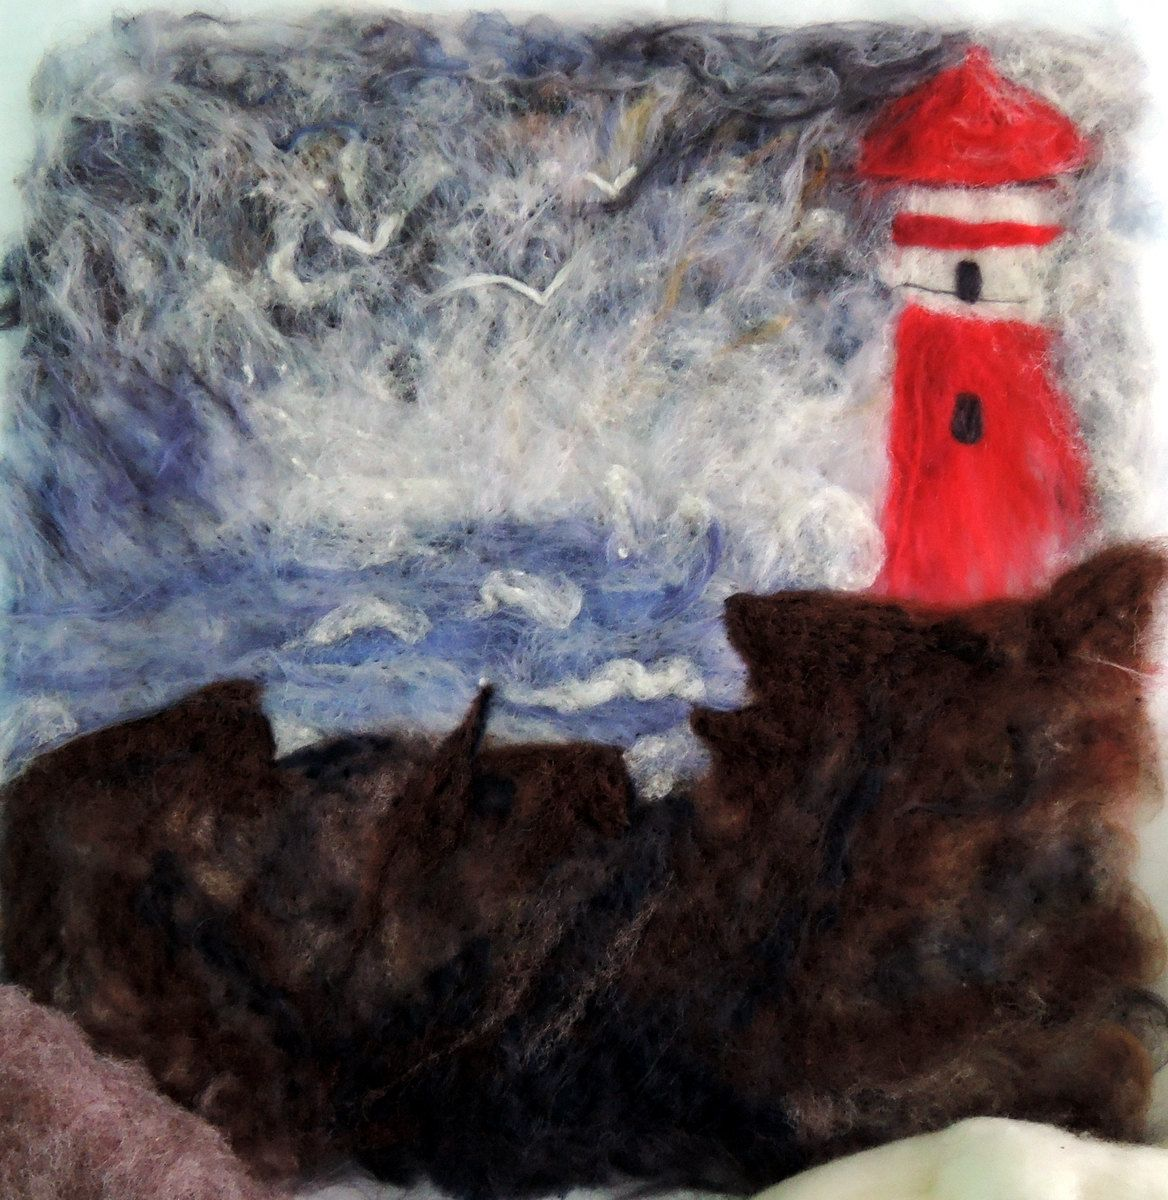 Wool painting wall hanging fiber art birthday congratulations wall hanging fiber art birthday congratulations 3d textured art lighthouse ocean sea bird stone cliff sciox Image collections